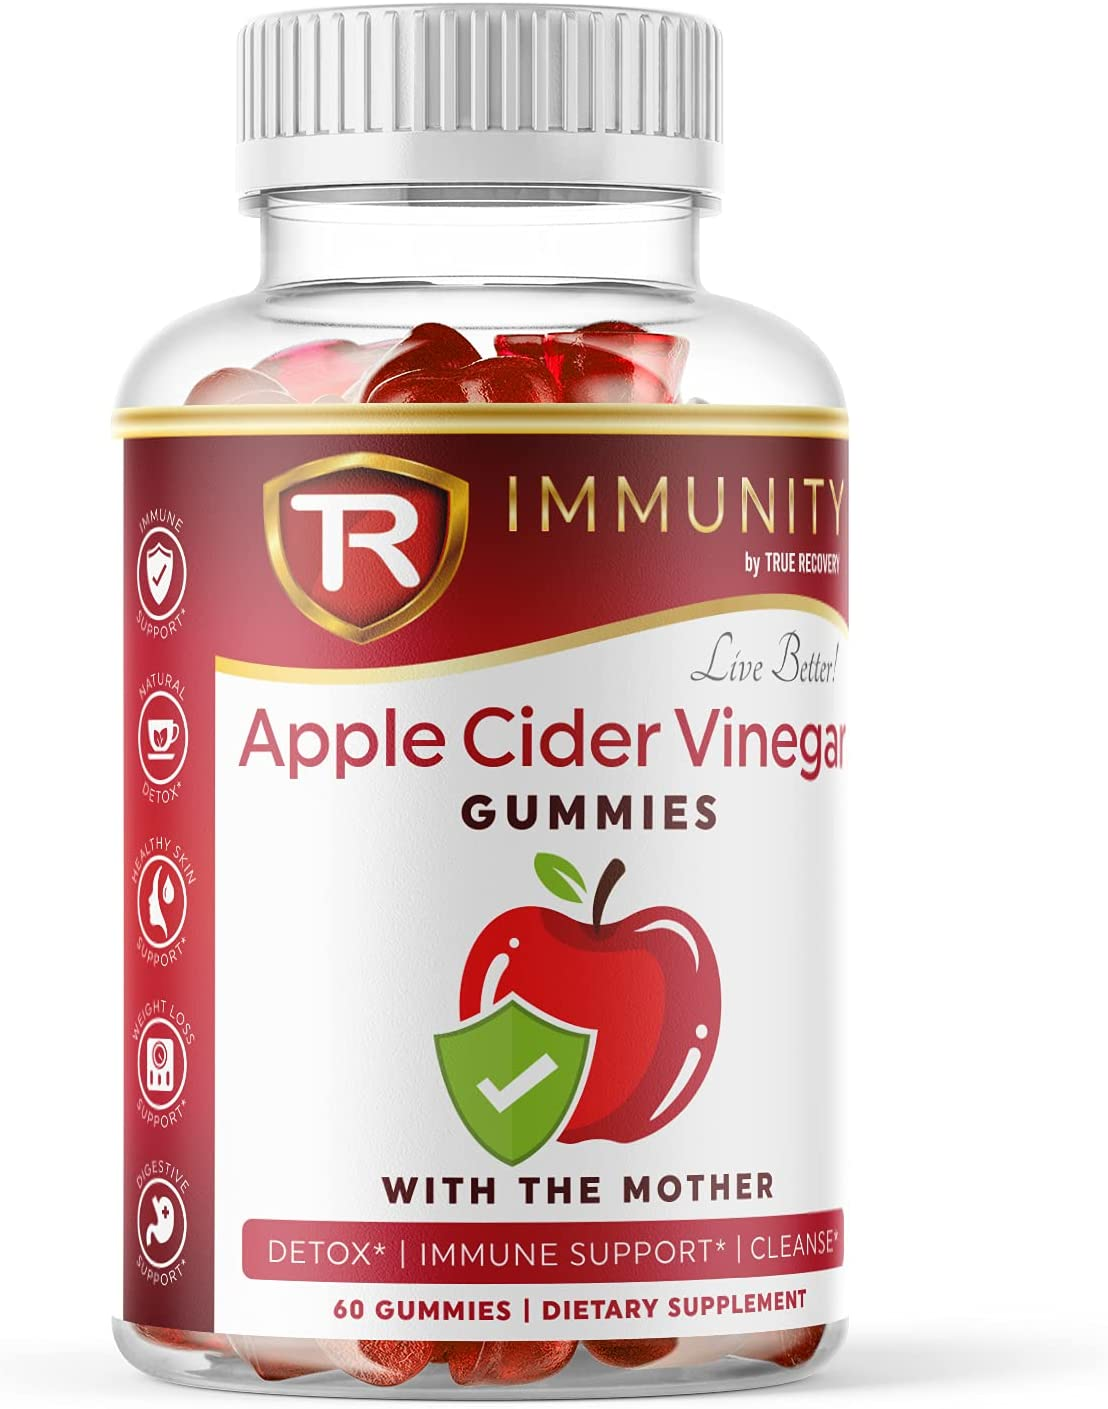 True Recovery Apple Cider Vinegar Gummies with Mother & Iodine | for Detox Cleanse, Weight Loss, Immune Support, Digestive Support | Vitamin B12, Beetroot | 60 Count Elderberry Gummies